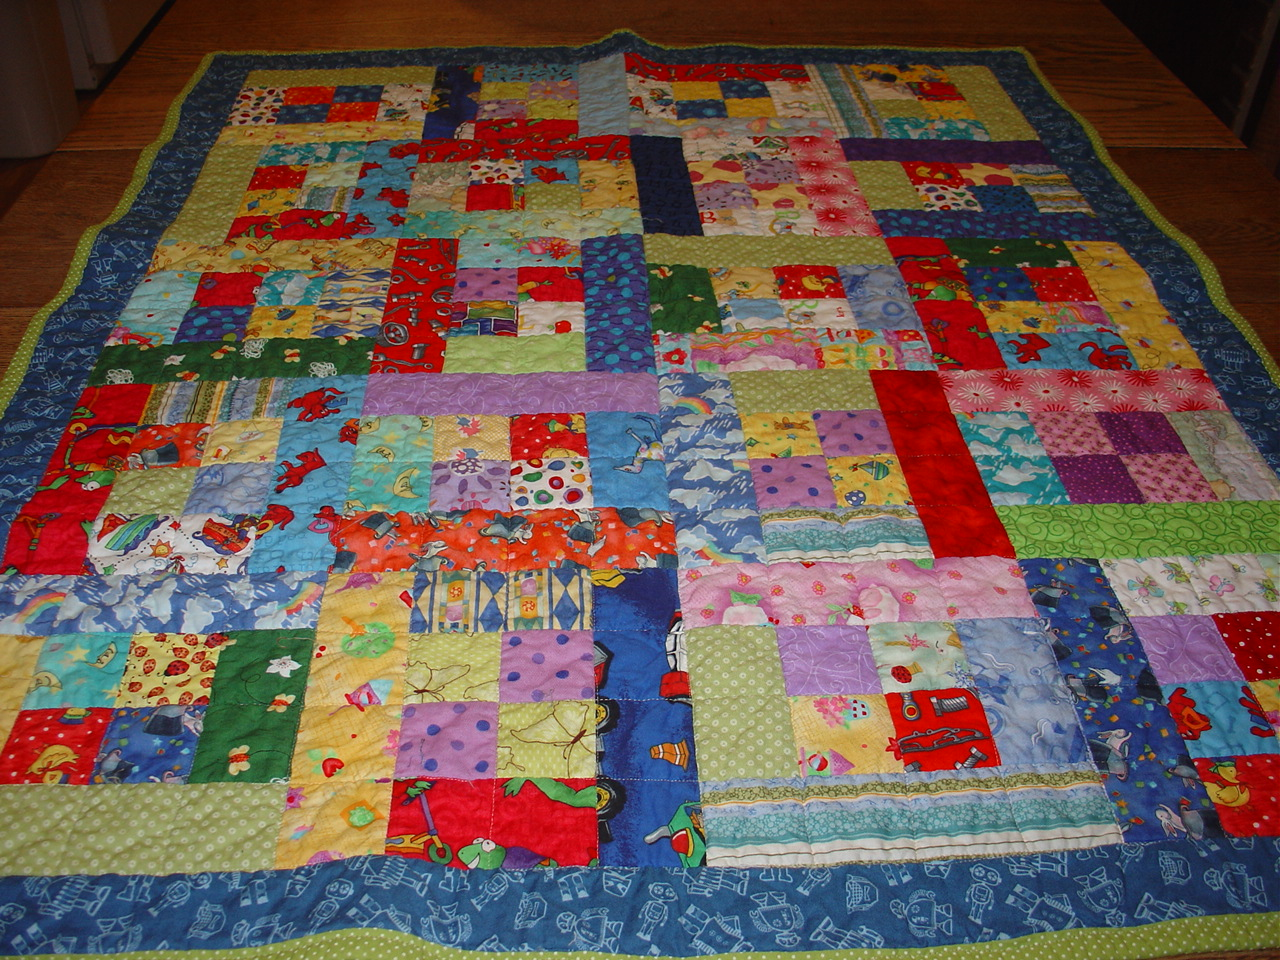 Treadlestitches Some Random Four Patch A Charity Quilt Pattern